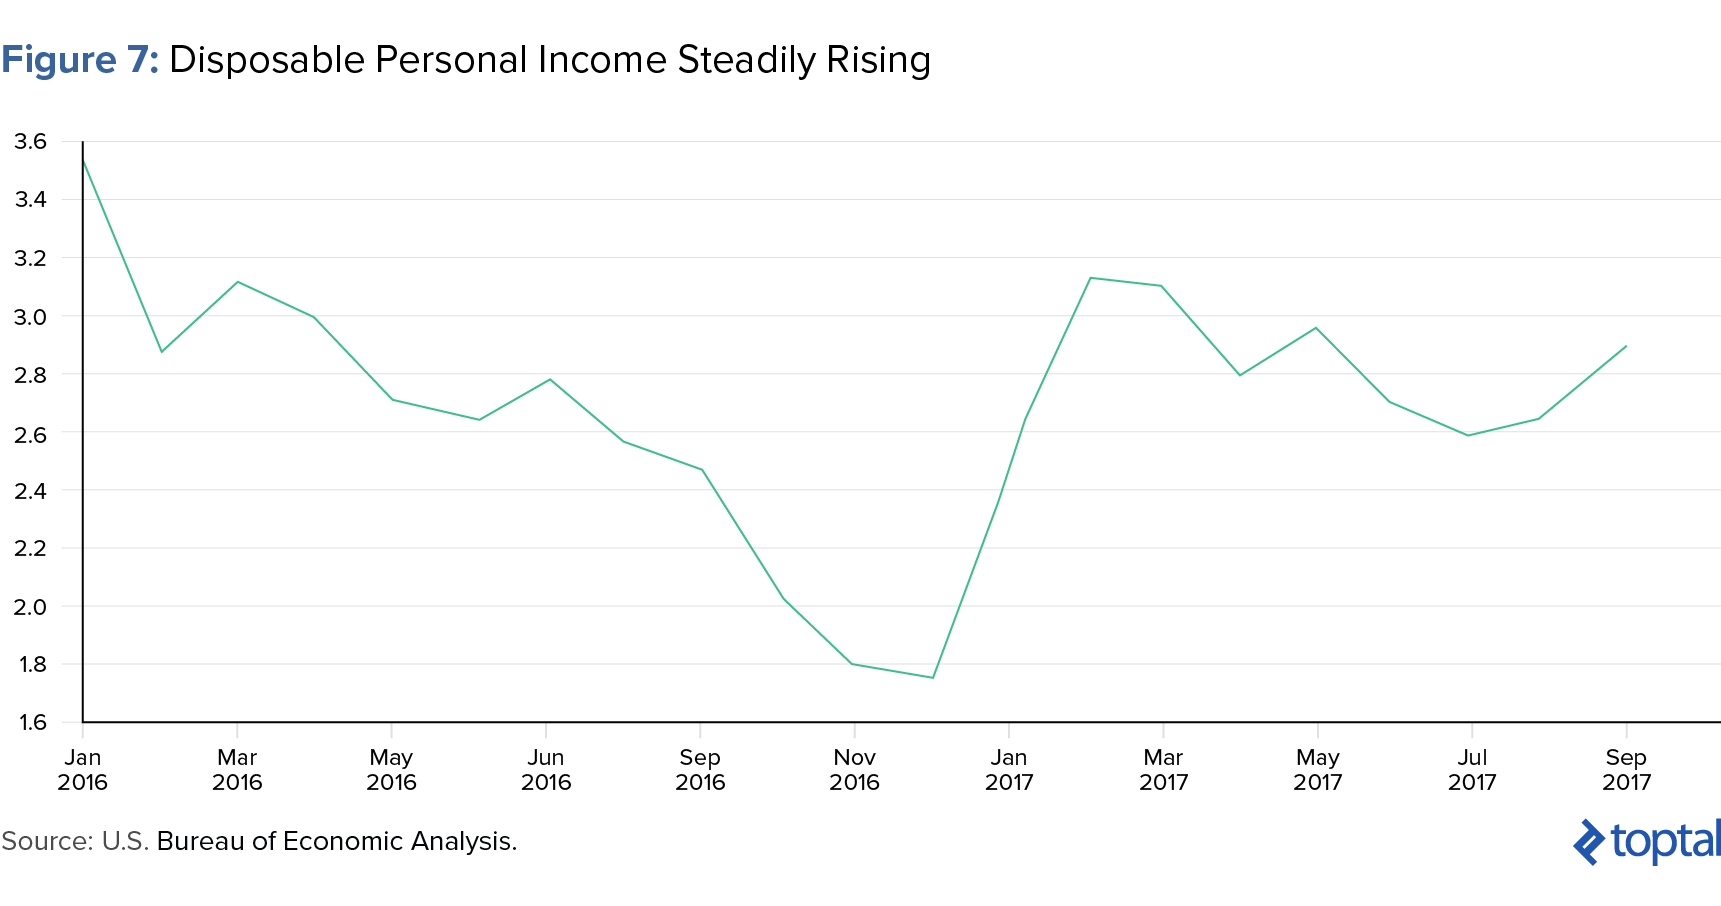 Figure 7: Disposable Personal Income Steadily Rising